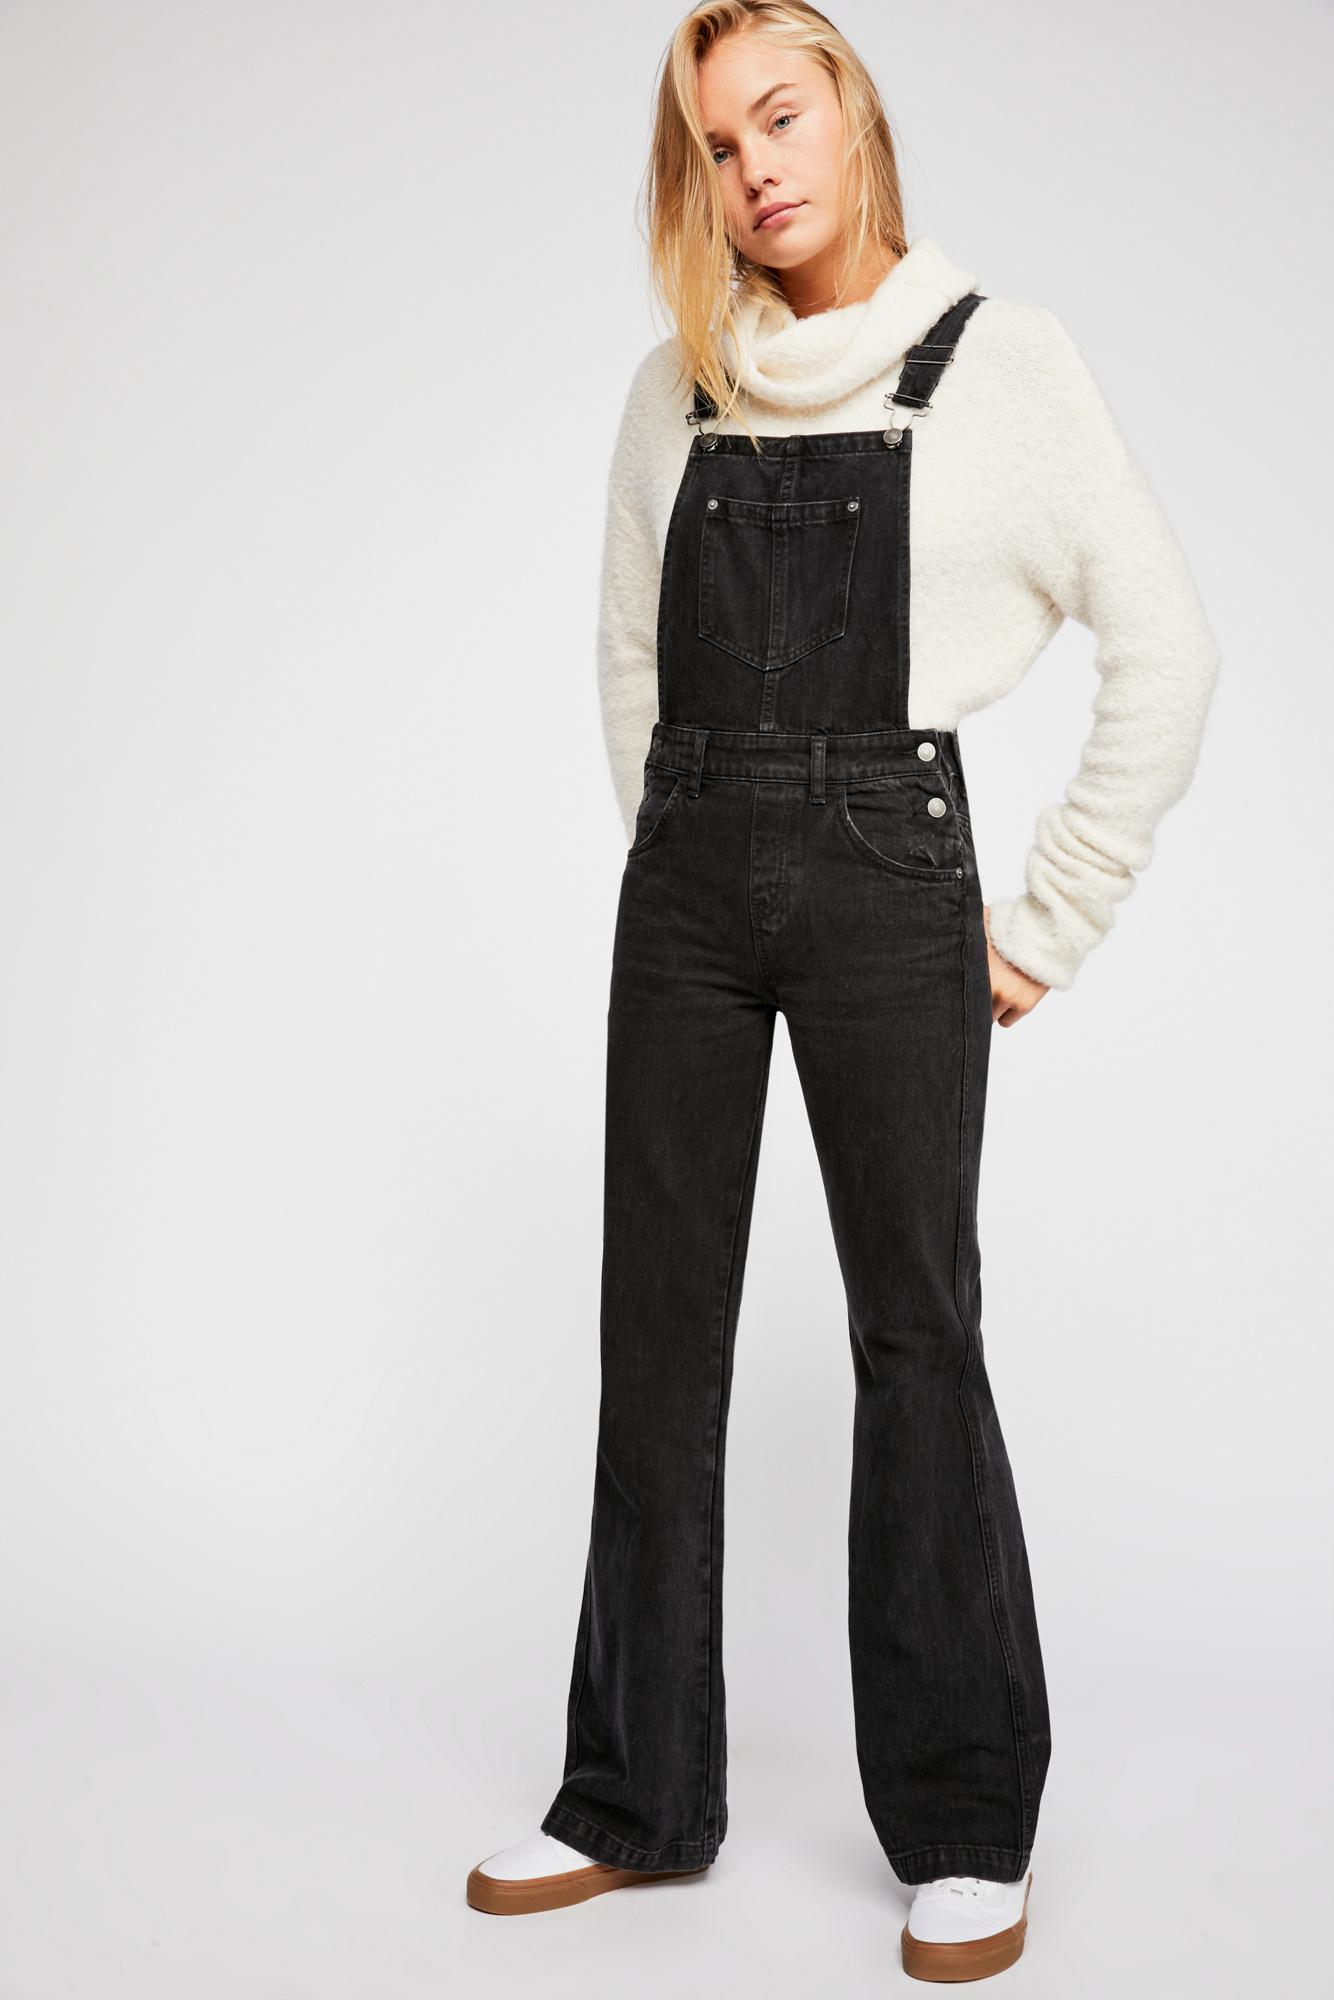 bc5f5d47ee Lyst - Free People Daisey Dungaree By We The Free in Black